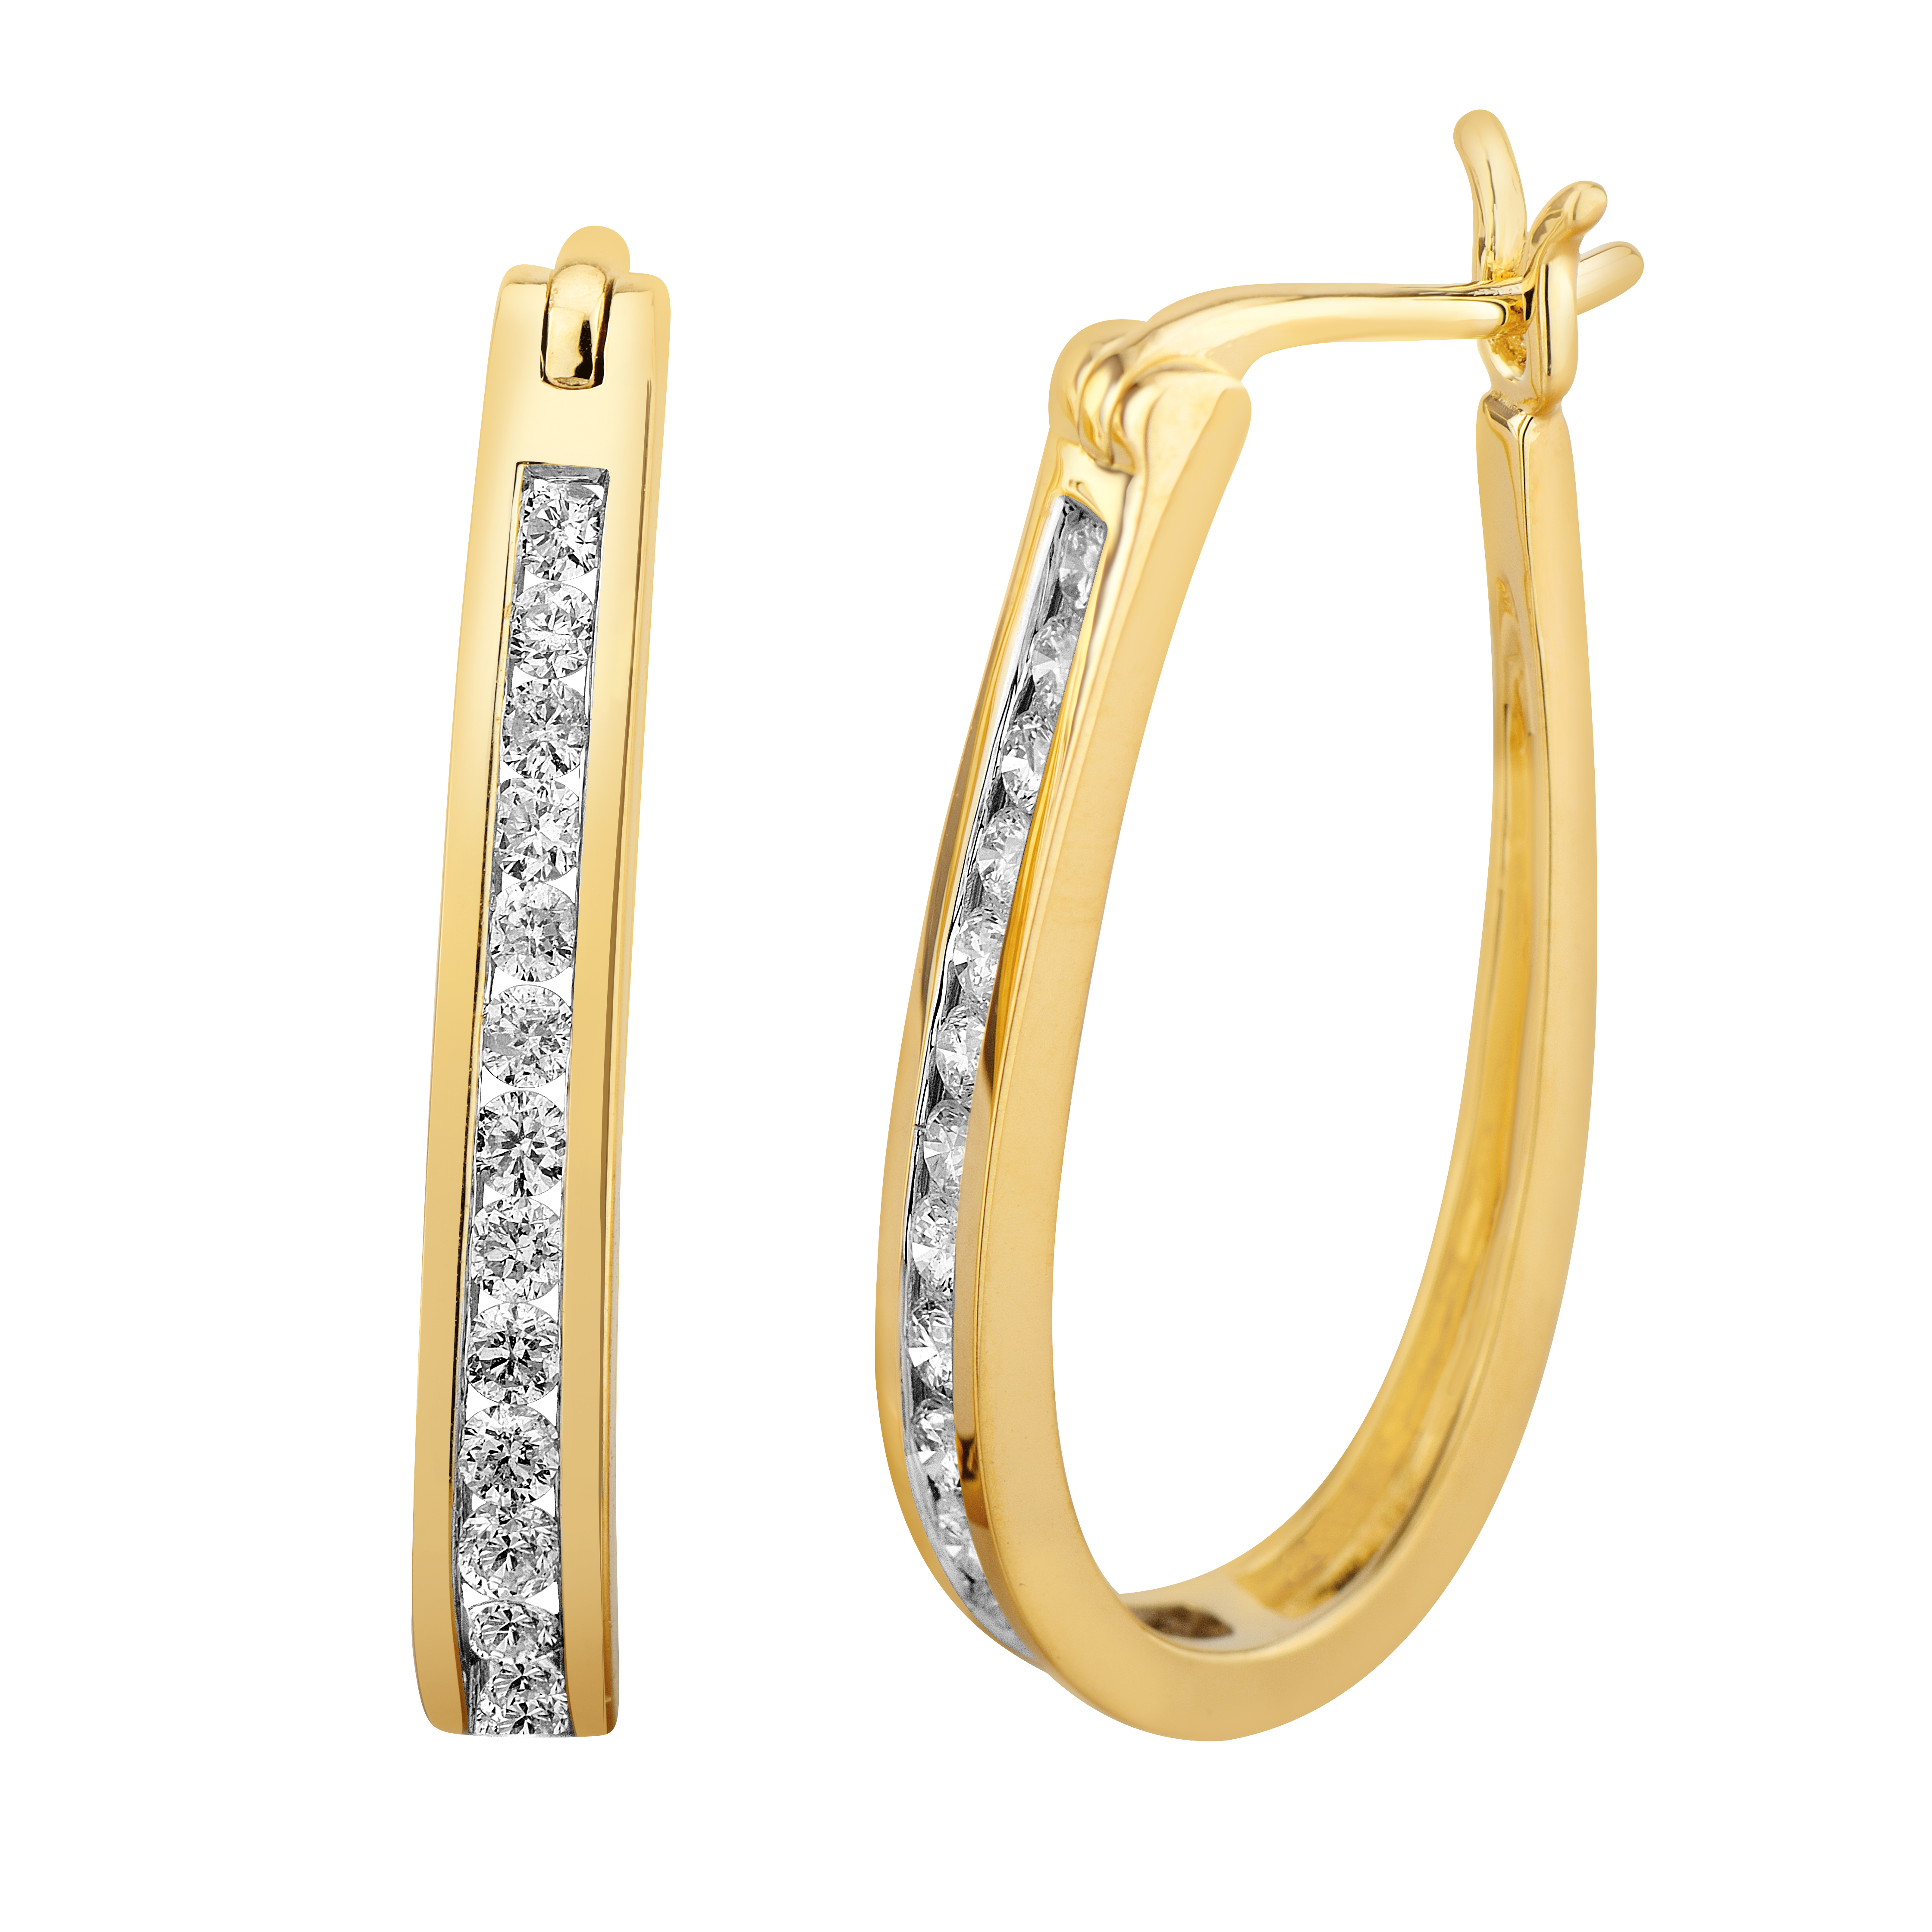 9ct Yellow Gold 1/2 Carat Chanel Set Hoop Earrings with 28 Brilliant Diamonds